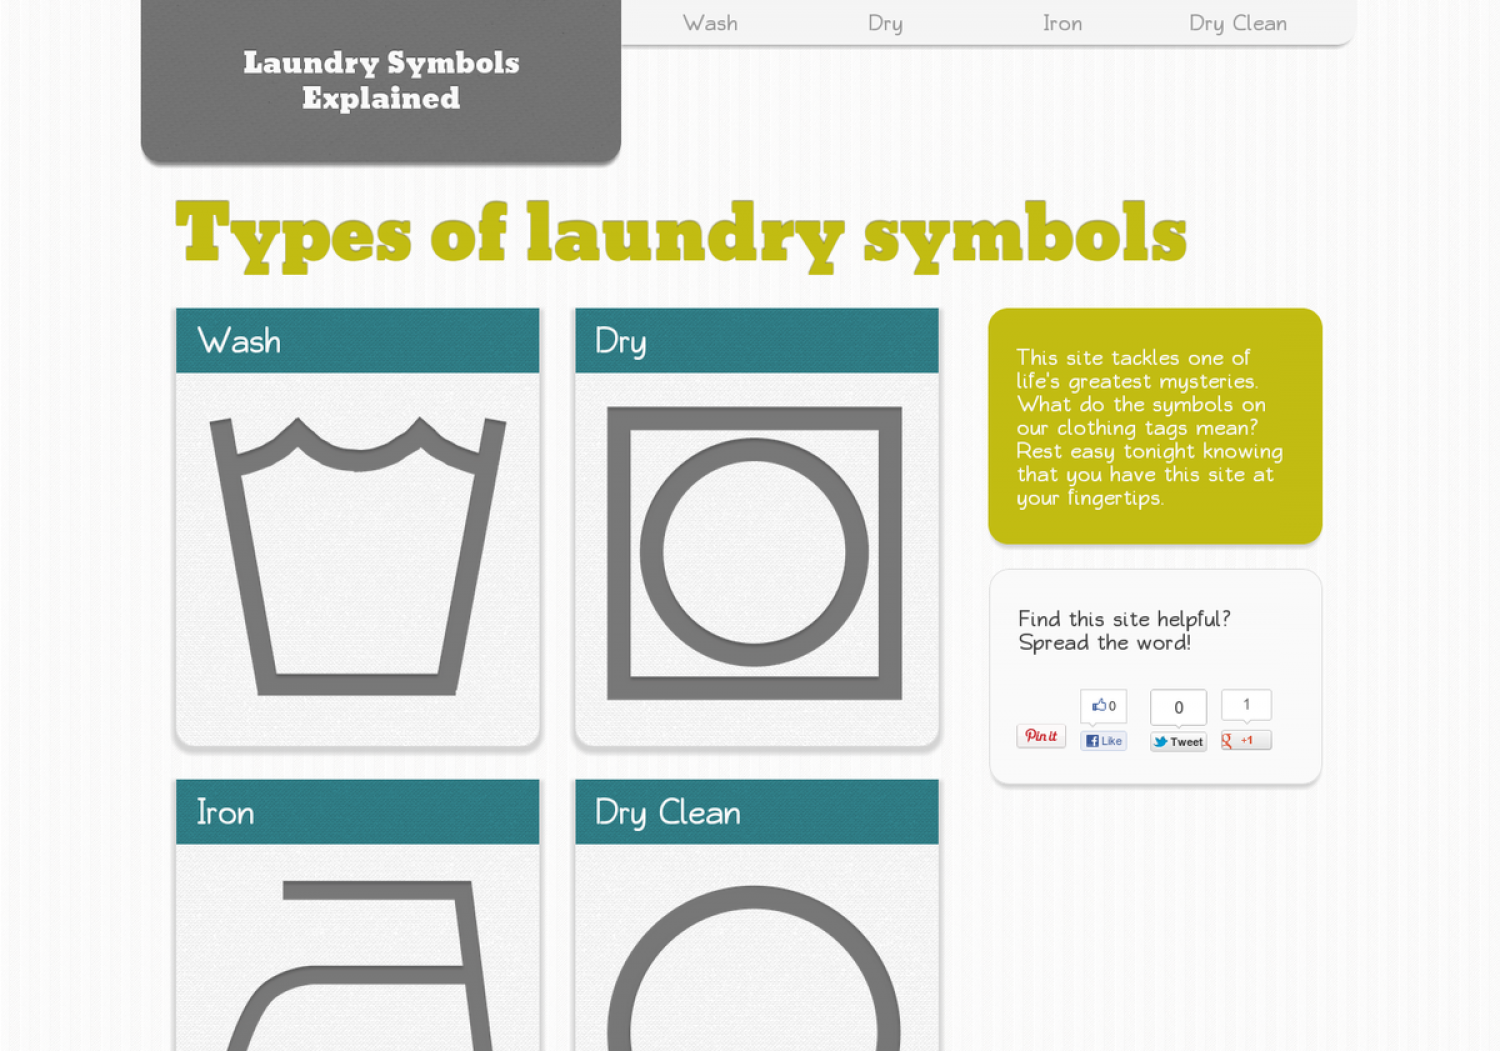 Laundry symbols explained visual laundry symbols explained infographic buycottarizona